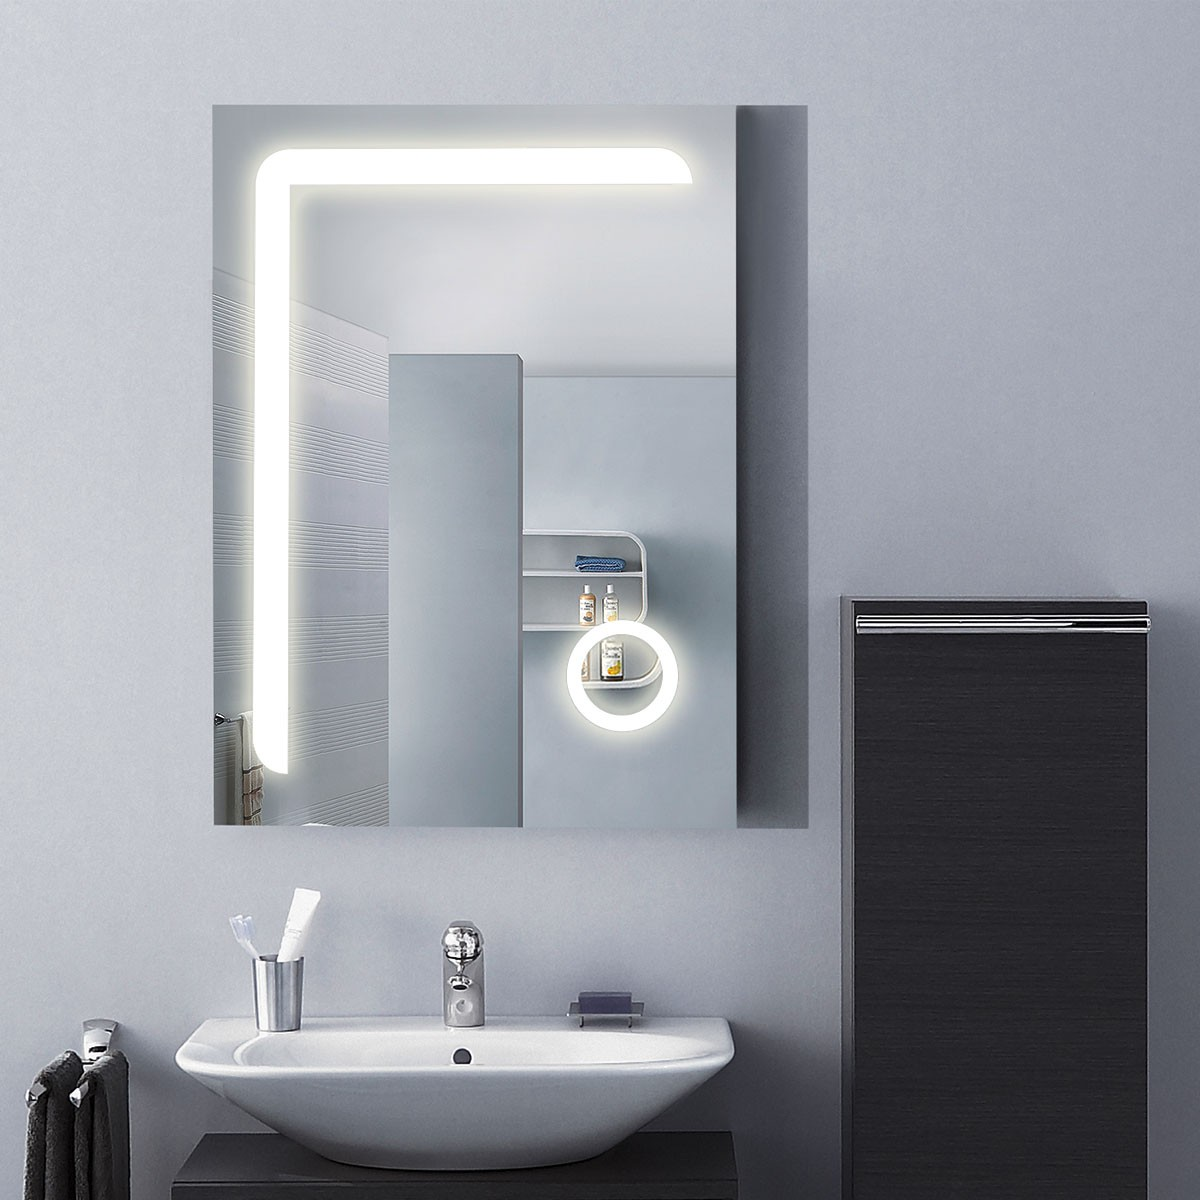 24 x 32 In Vertical LED Bathroom Mirror with Circular Magnifier and ON/OFF Switch (DK-OD-CL810)